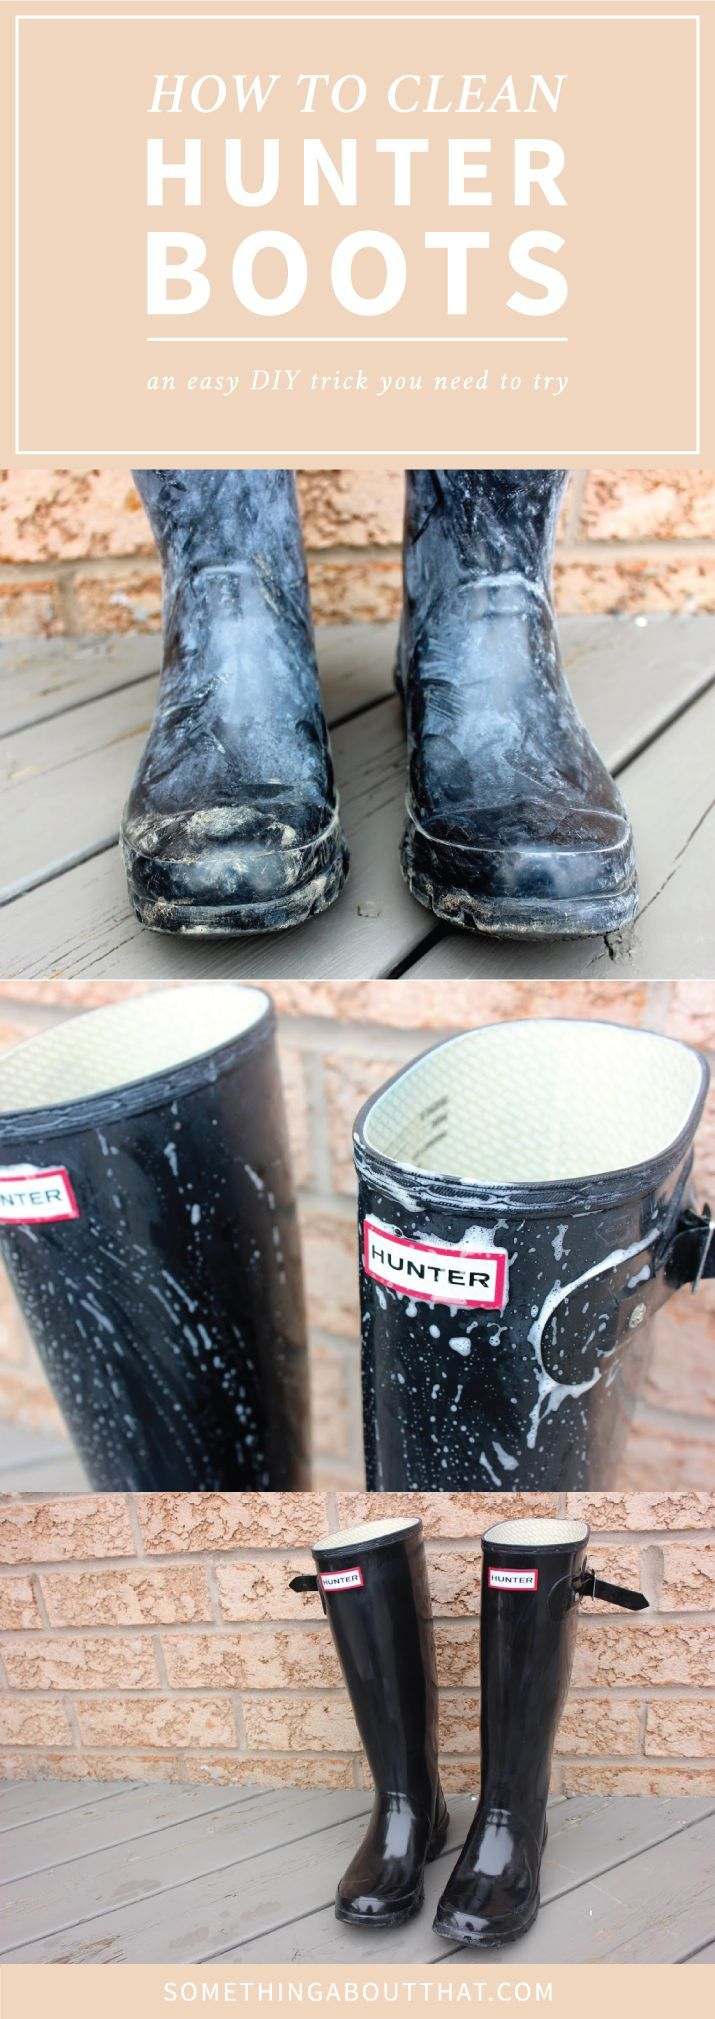 How To Clean Hunter Boots - Get rid of the white film from blooming | http://somethingaboutthat.com